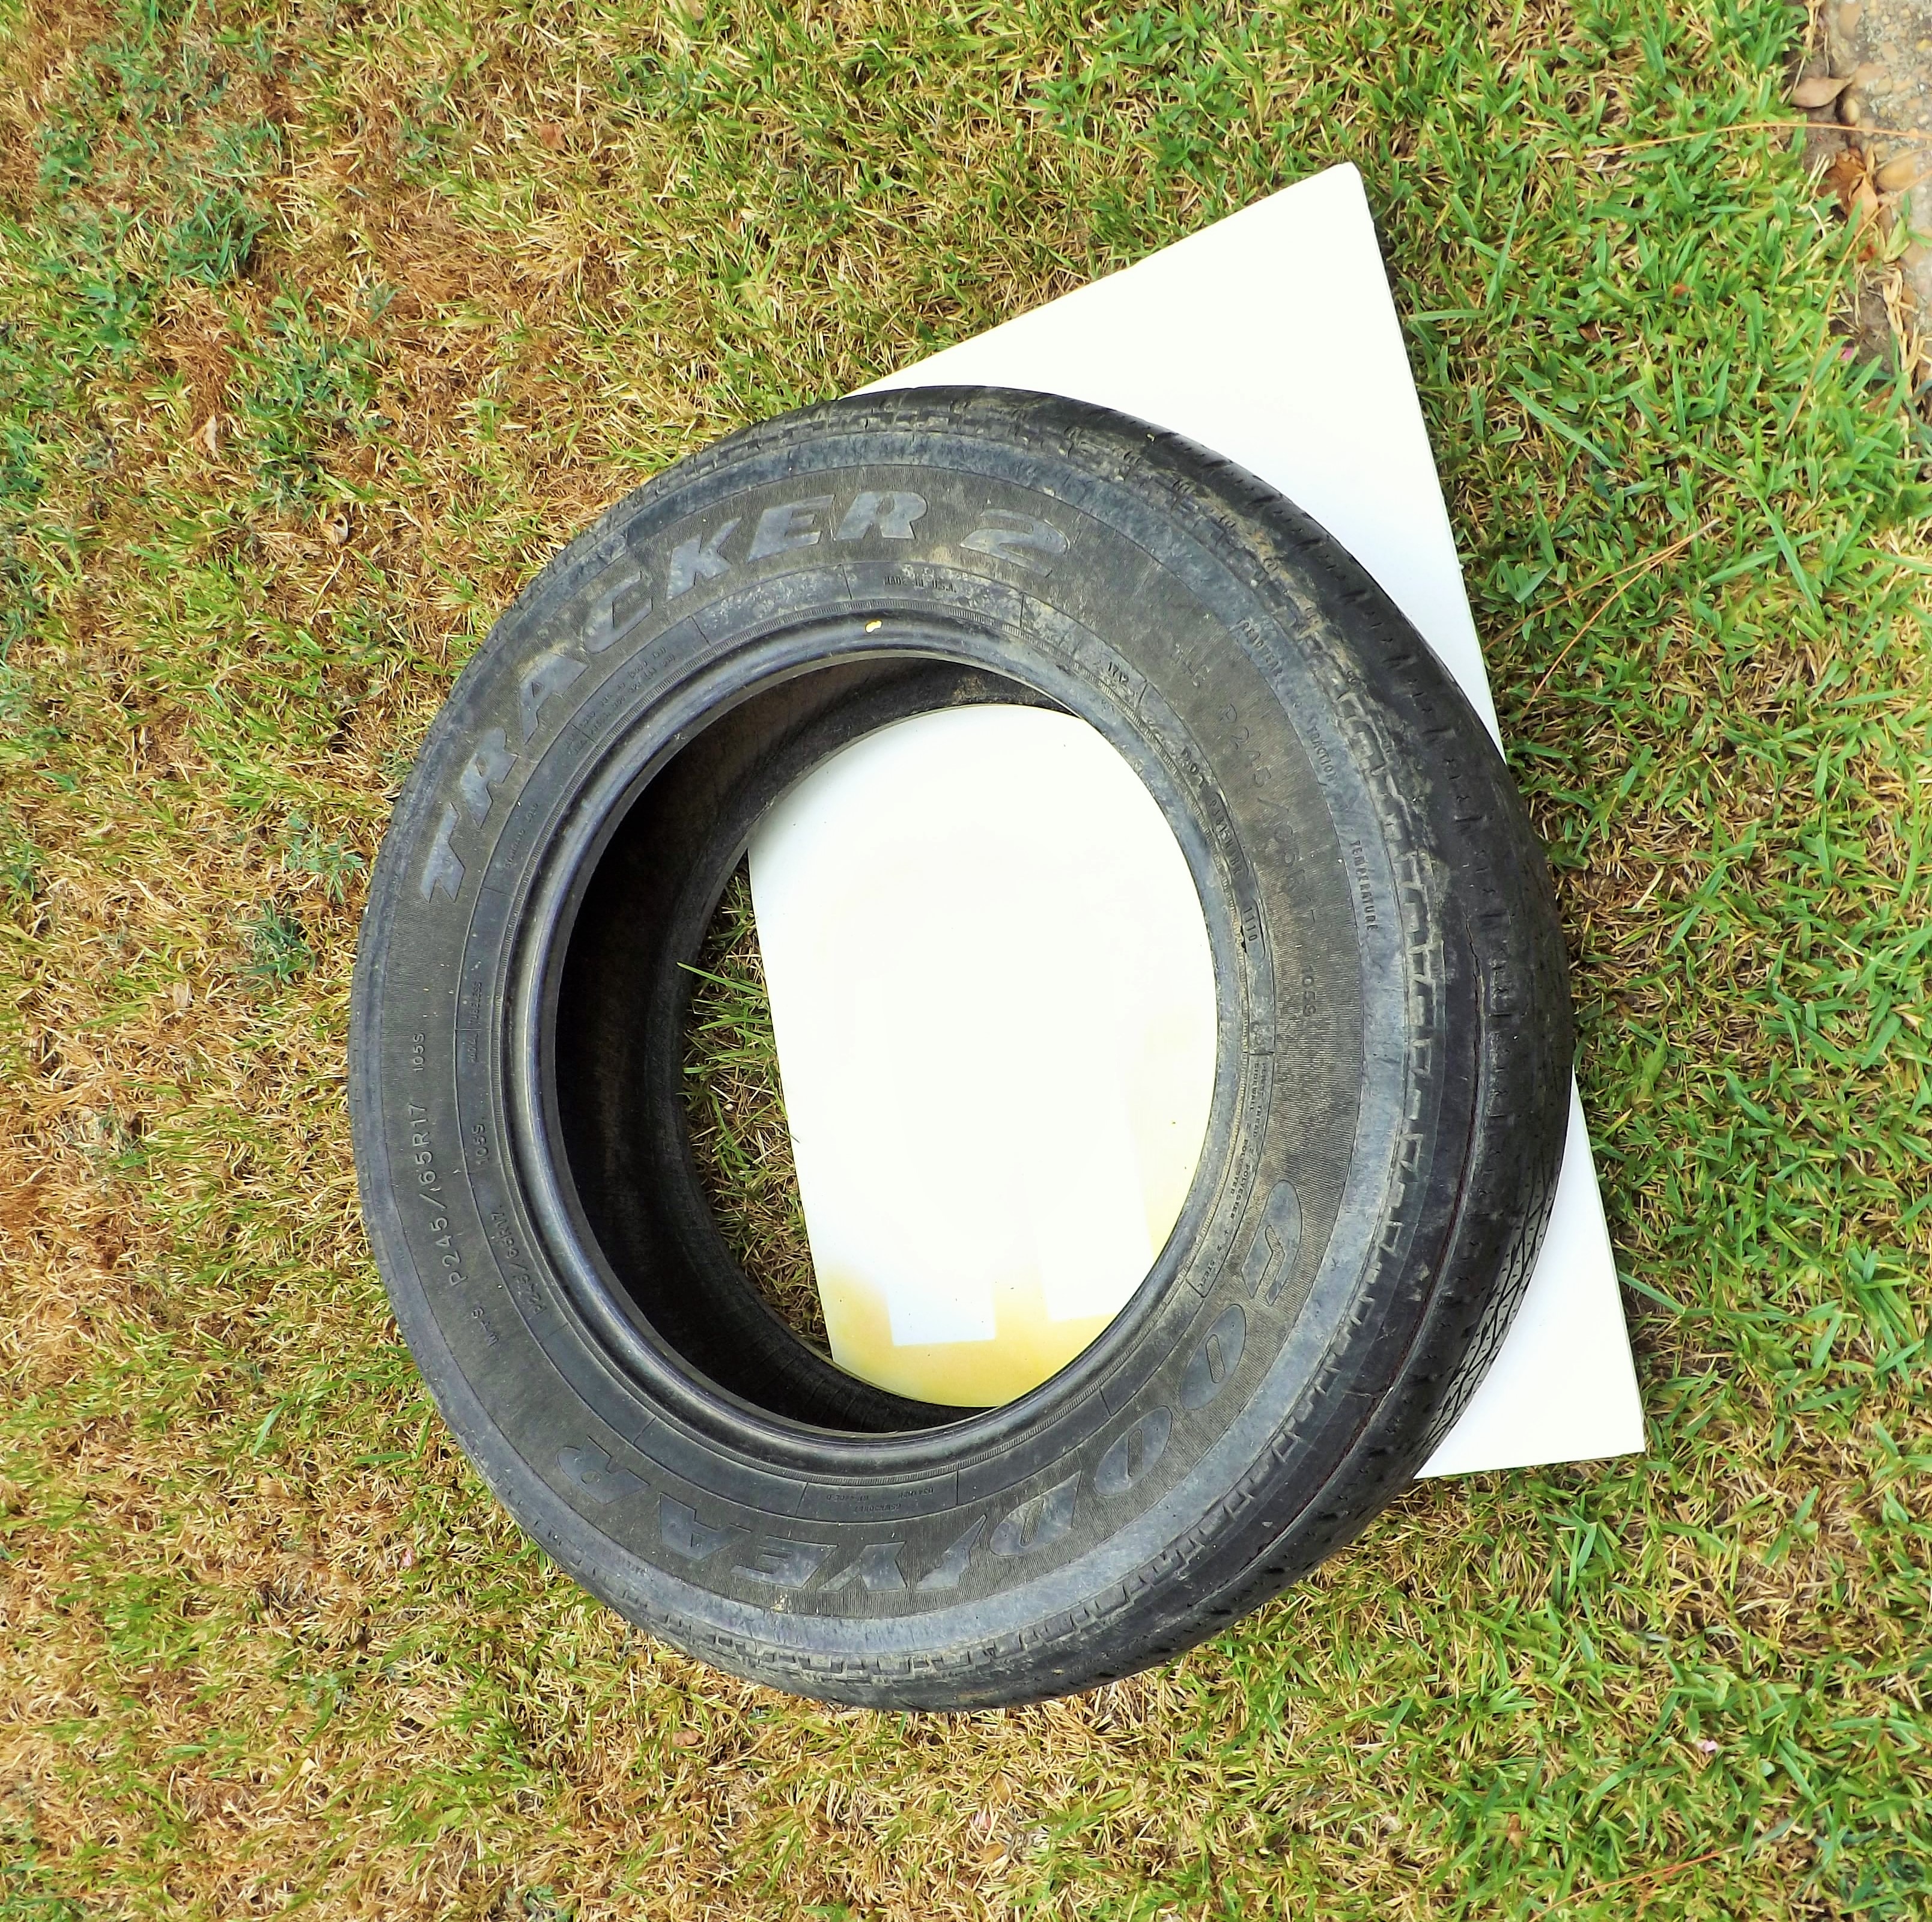 Diy hanging tire planter wonderful creations blog for Using tyres as planters